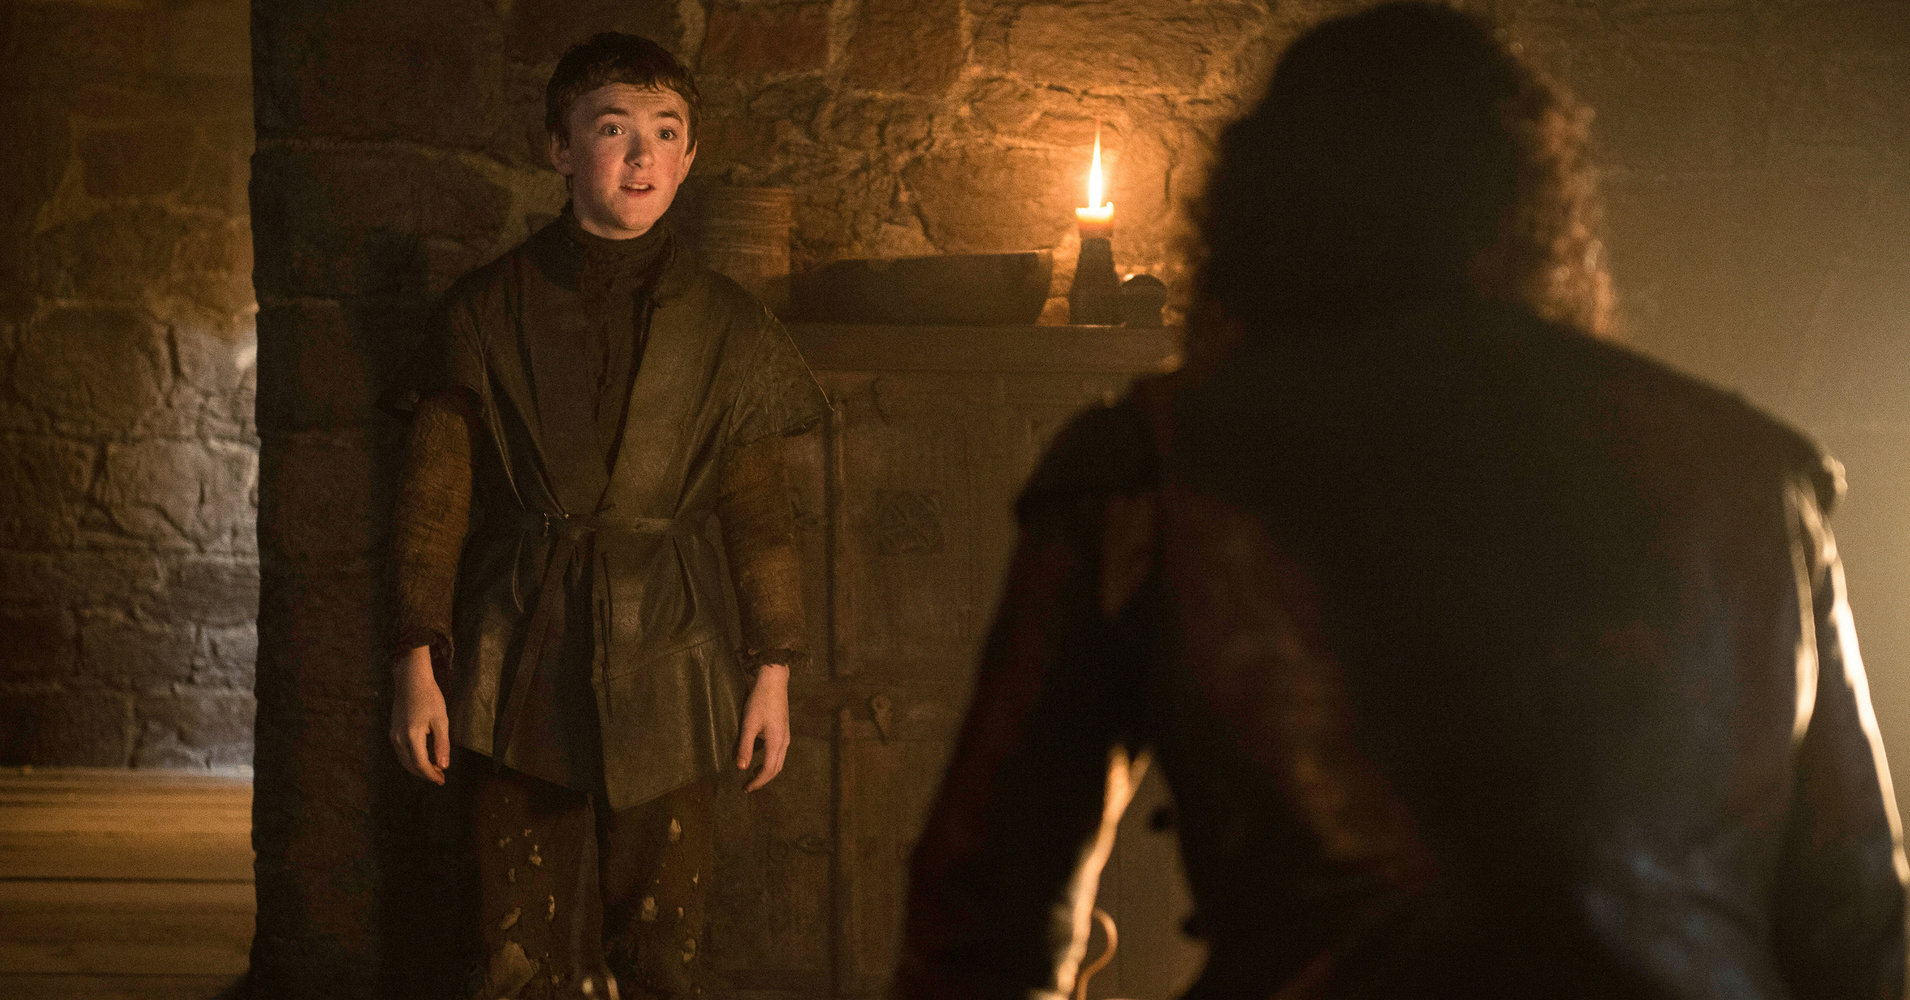 4 Years Later, Olly From 'Game Of Thrones' Is Still Getting Trolled